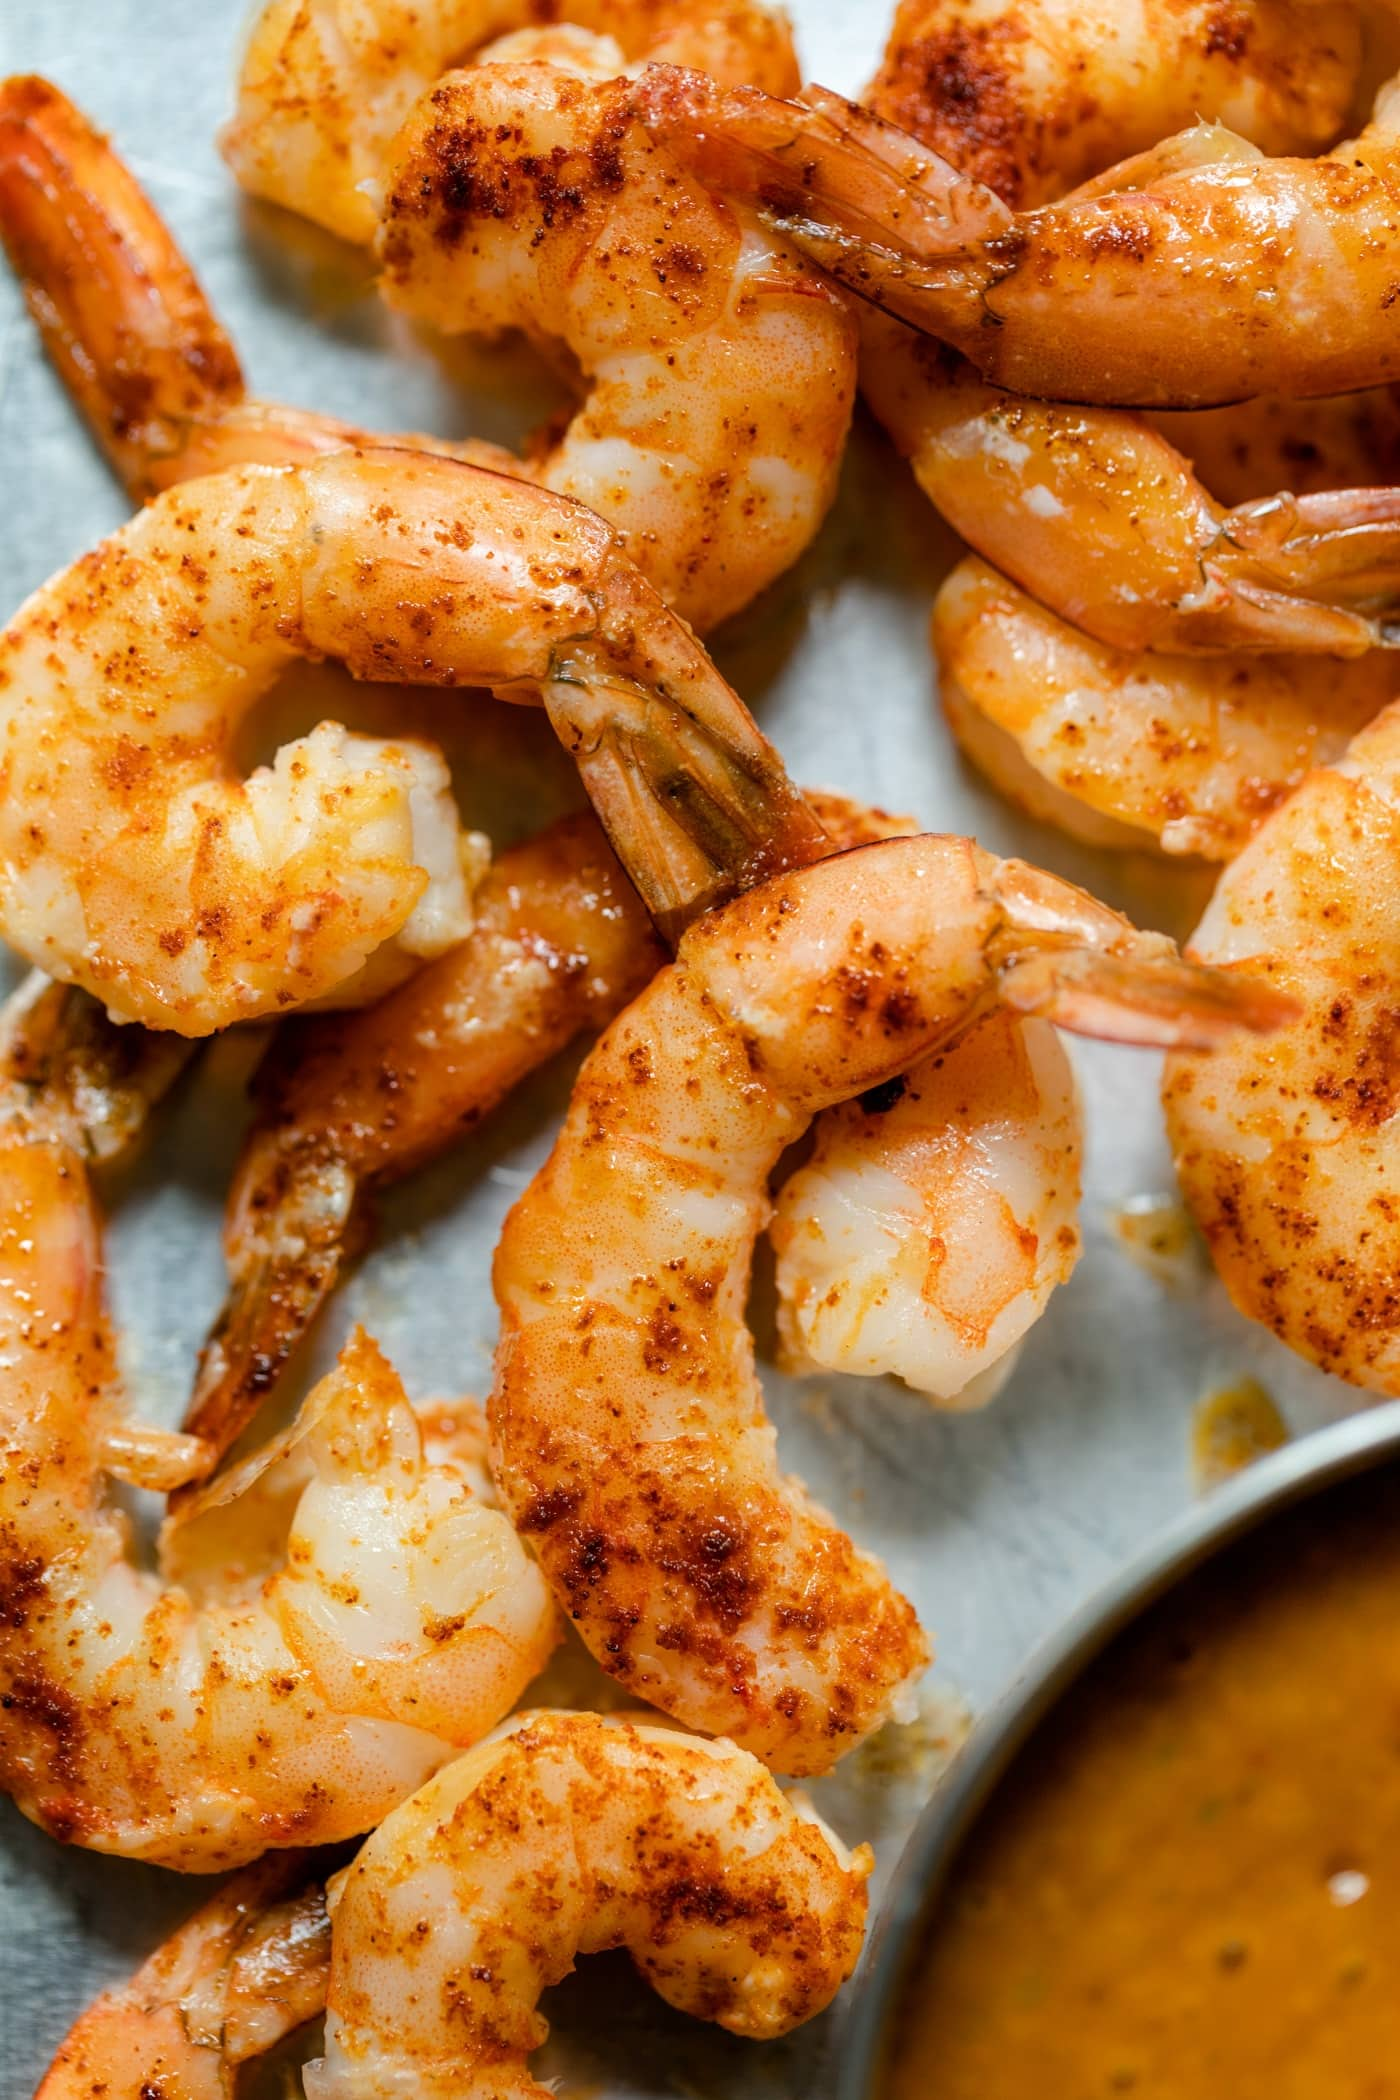 Top down view of pieces of chipotle shrimp with tails attached on roasting sheet with bowl of mango sauce on a gray concrete surface